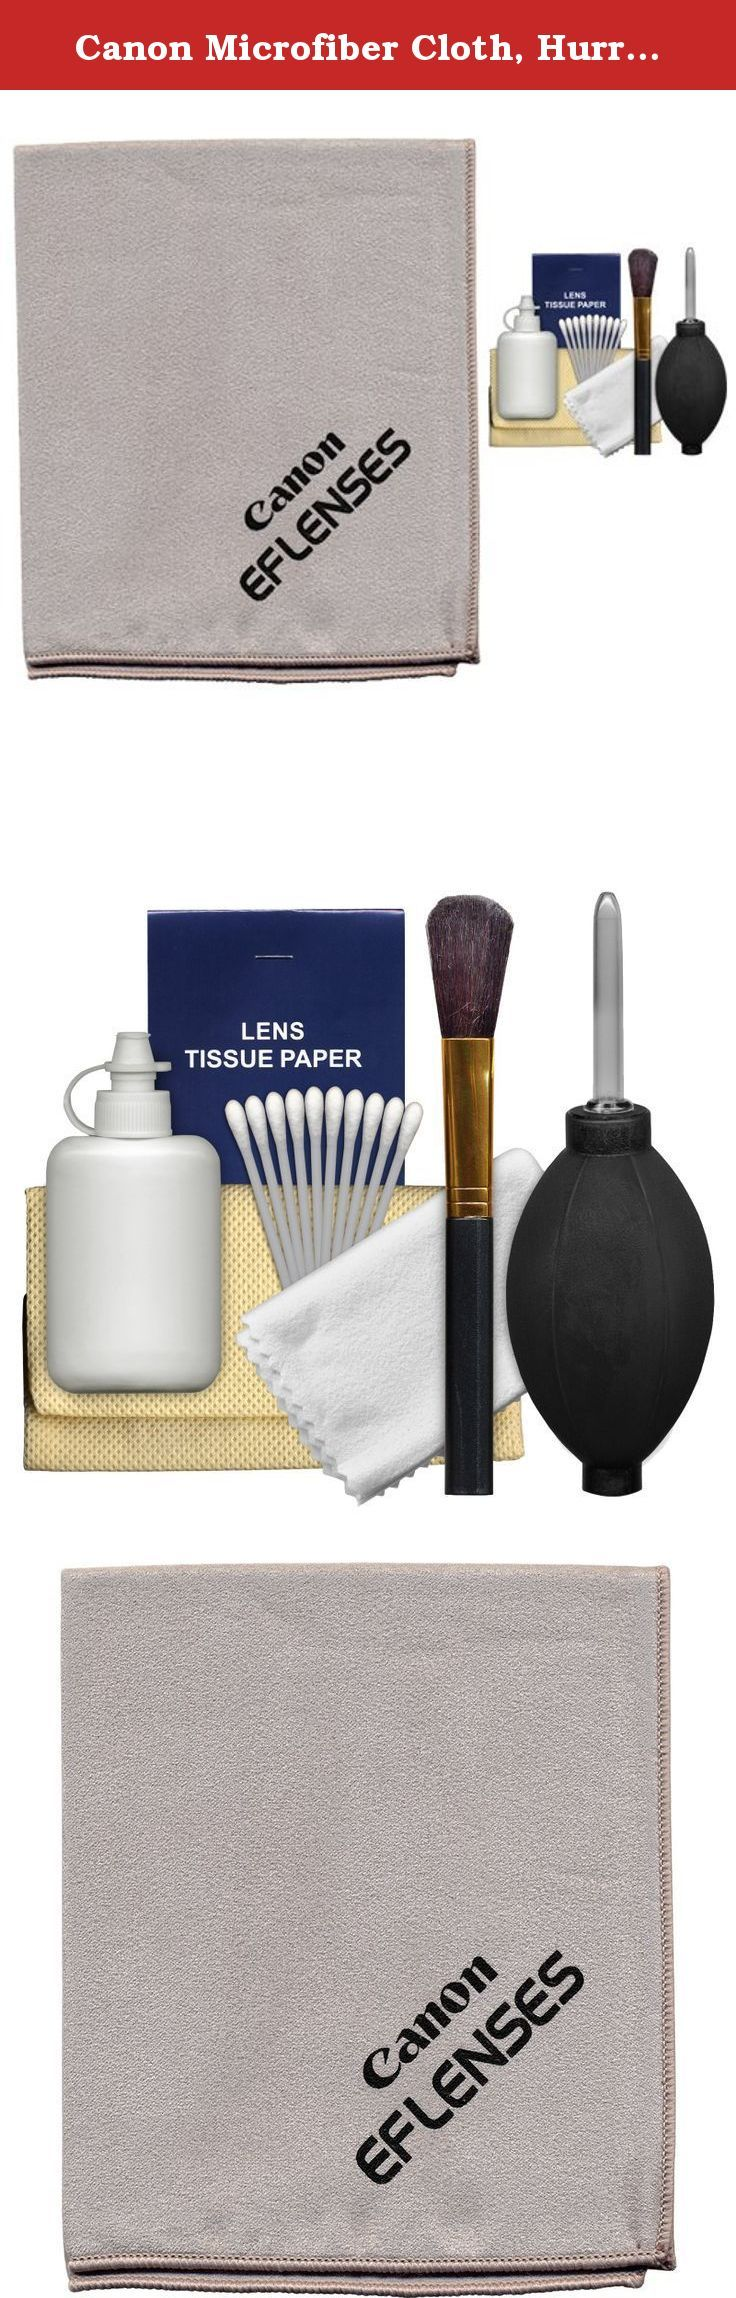 Canon Microfiber Cloth, Hurricane Blower, Brush, Fluid & Tissue Cleaning Kit for EF Lenses & EOS 6D, 70D, 7D, 5DS, 5D Mark II III, Rebel T5, T5i, T6i, T6s, SL1 DSLR Camera. Kit includes: ♦ 1) Canon EF Lenses Microfiber Lens Cleaning Cloth ♦ 2) Precision Design 6-Piece Camera & Lens Cleaning Kit This Canon EF Lenses Microfiber Cleaning Cloth is an ideal solution for keeping your camera and lenses smudge-free. Made from a soft, lint-free material. This cloth is 100% safe for all lenses, LCD...